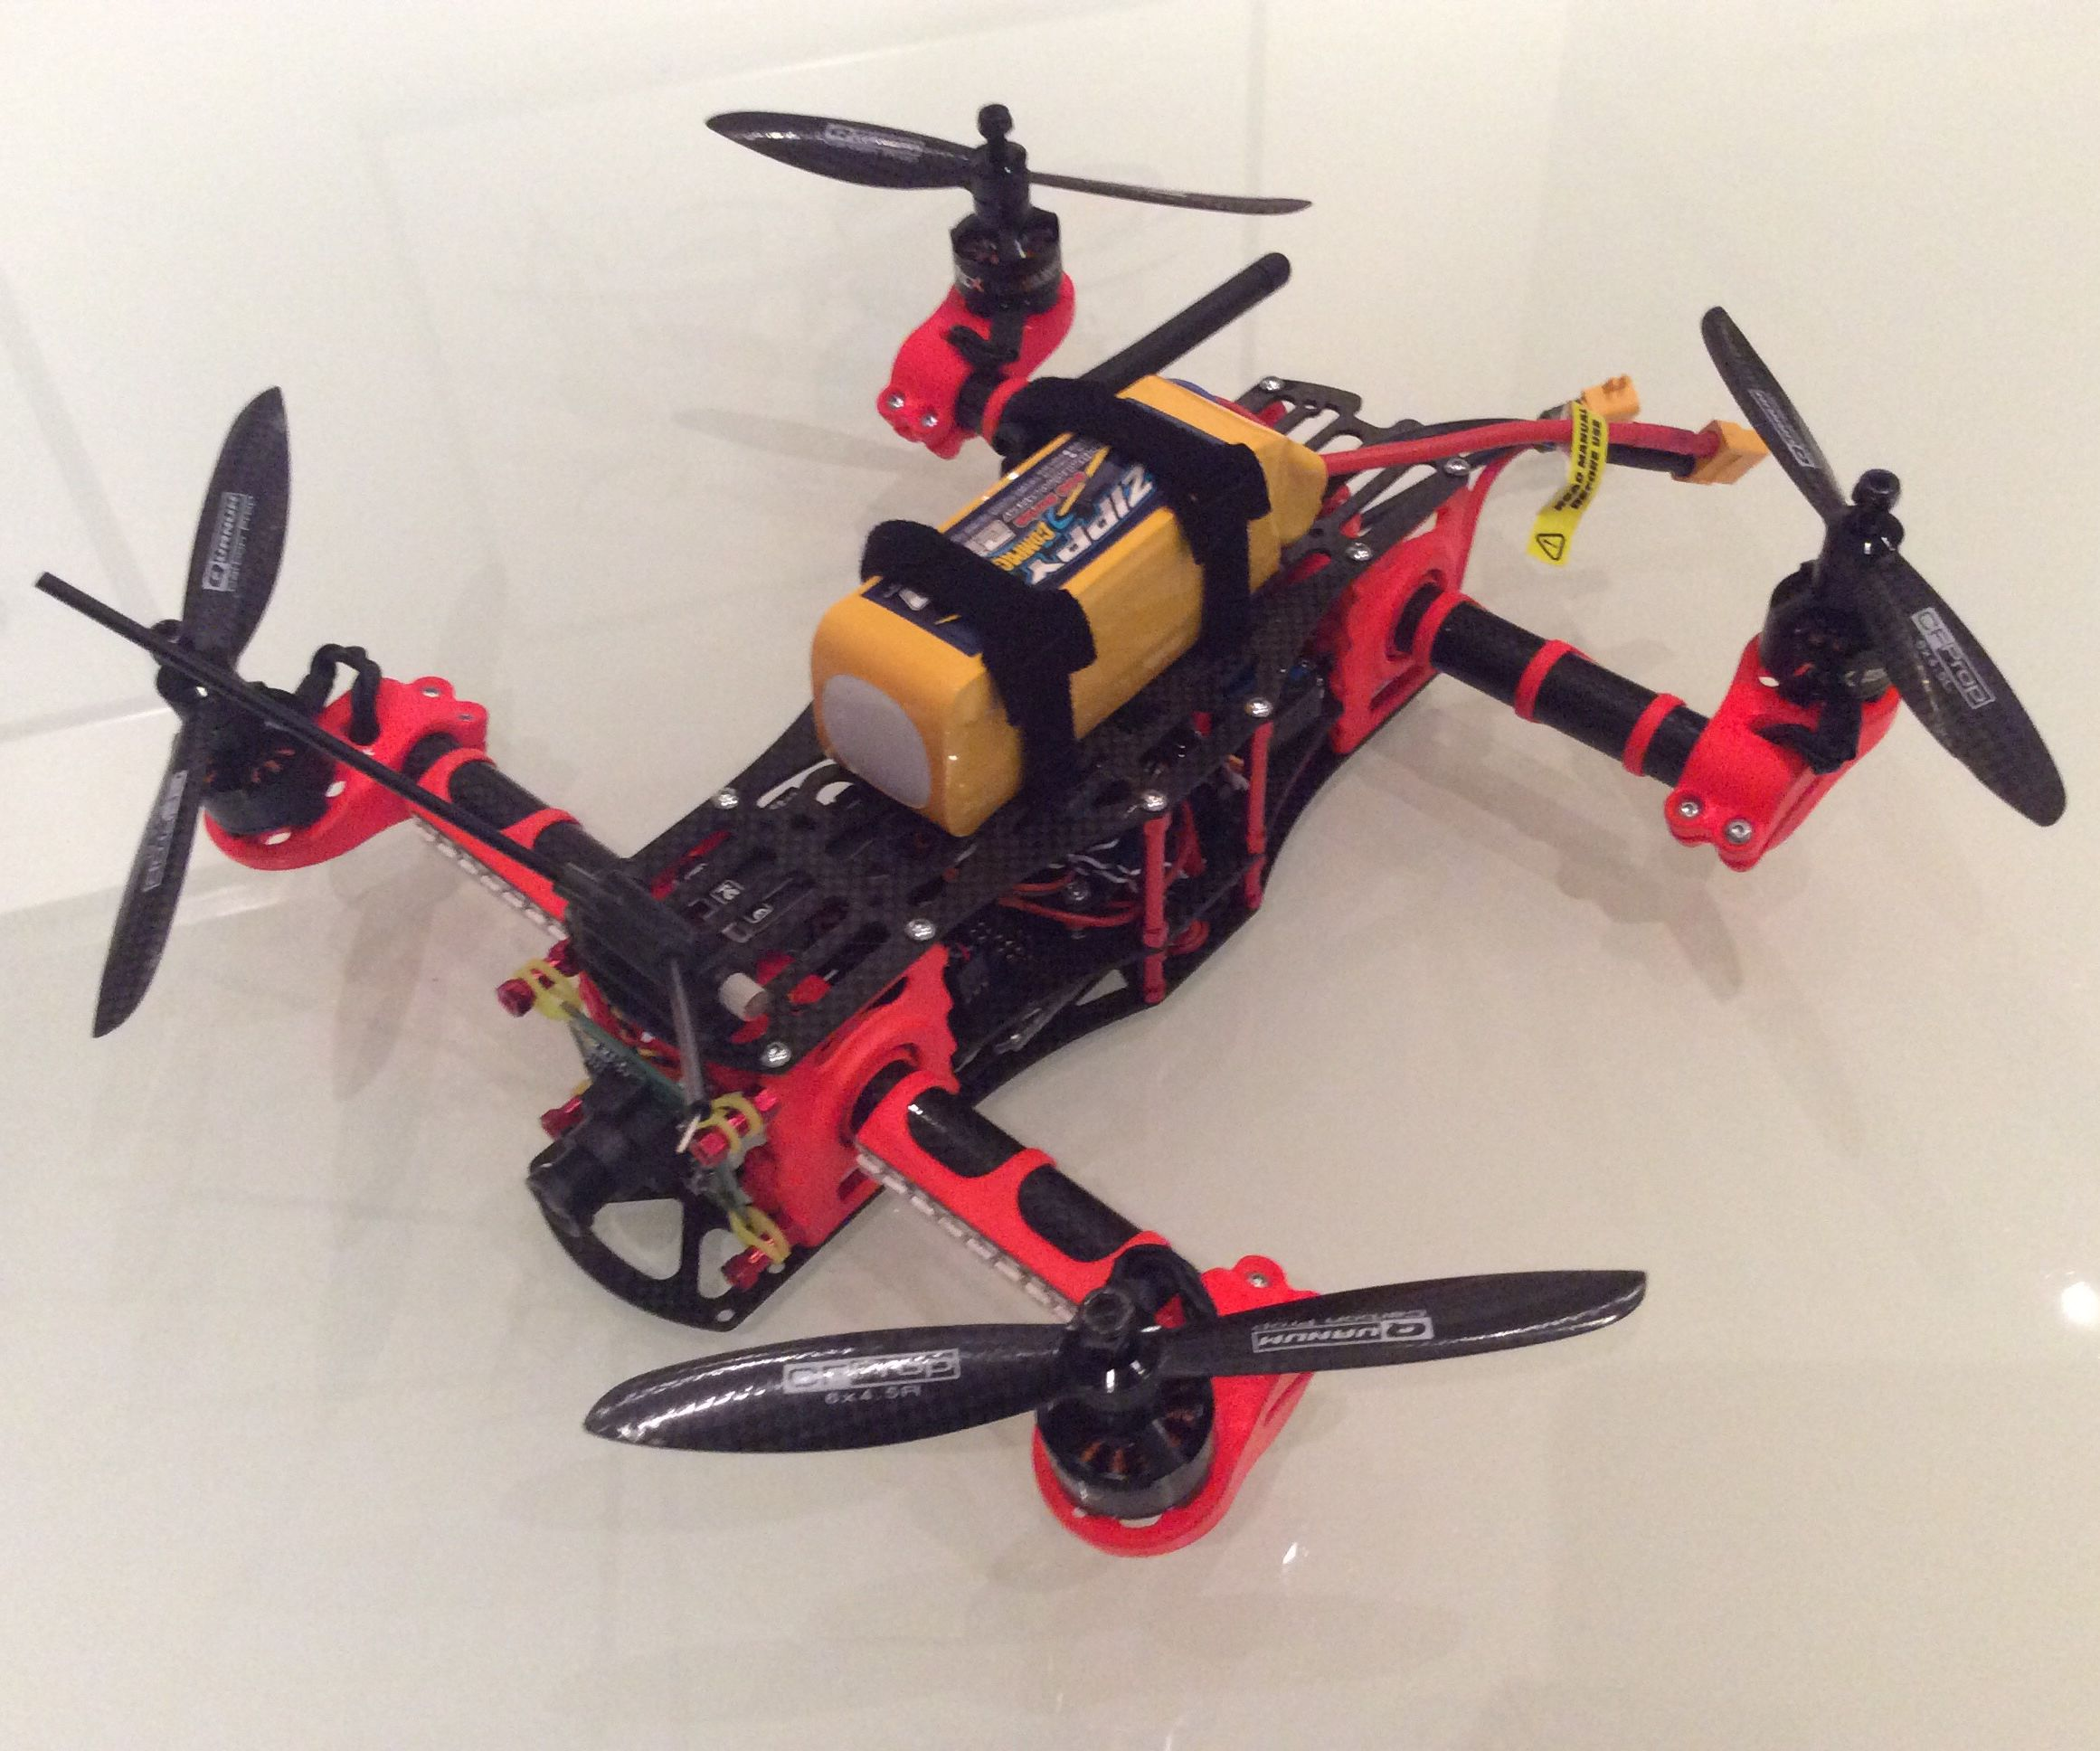 Drone with dynamic tilt arms